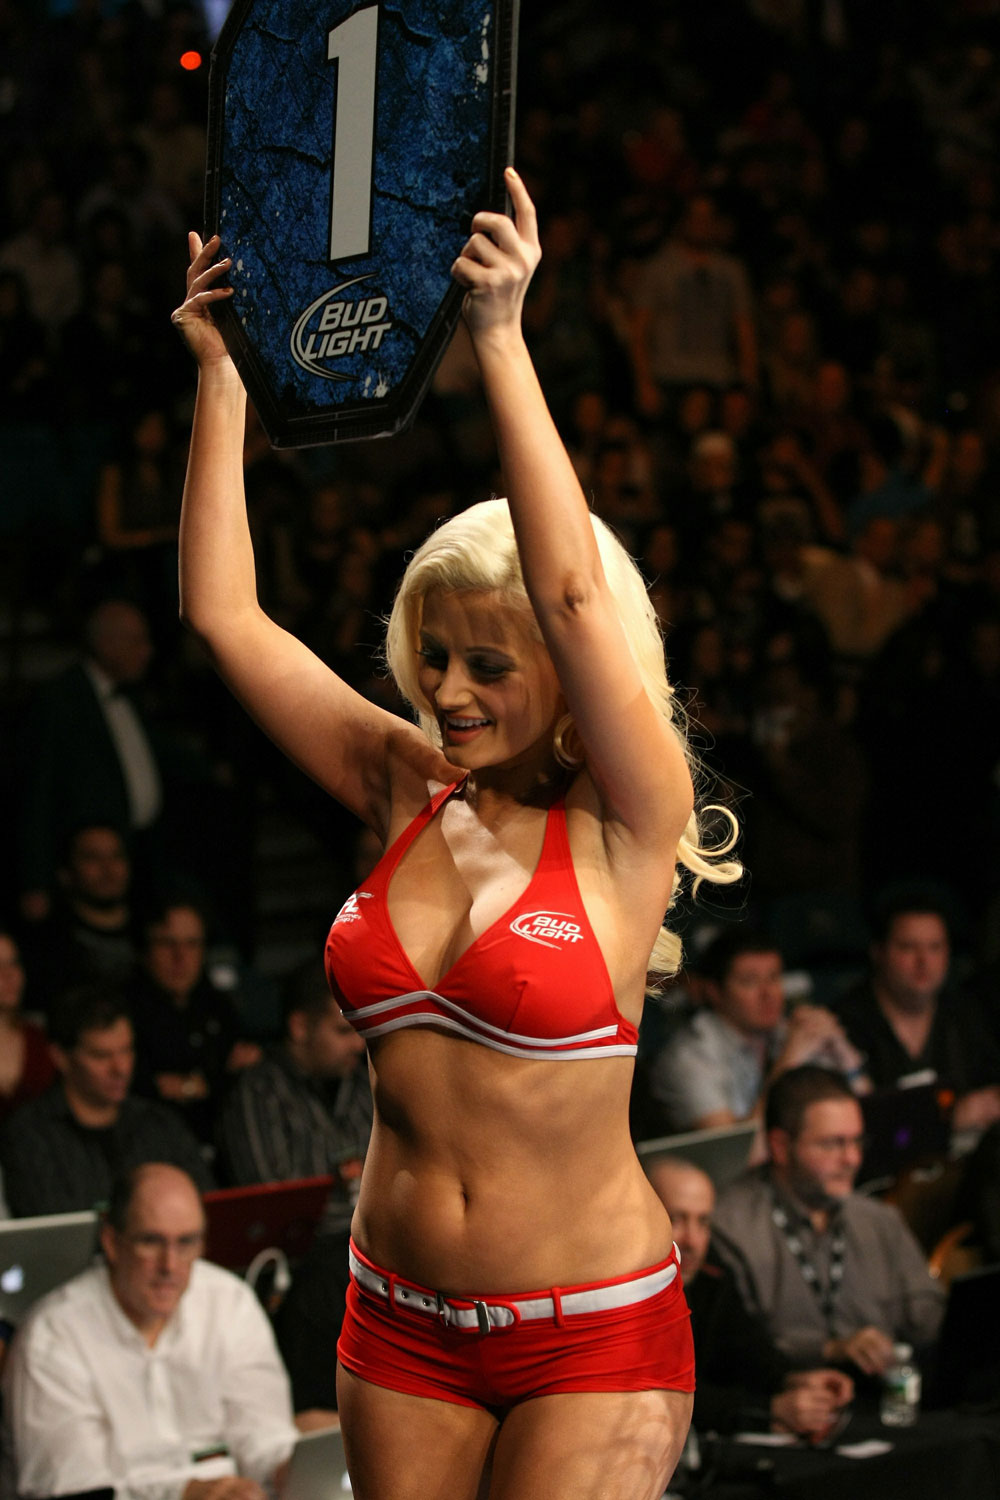 UFC 125: Guest Octagon Girl, Holly Madison